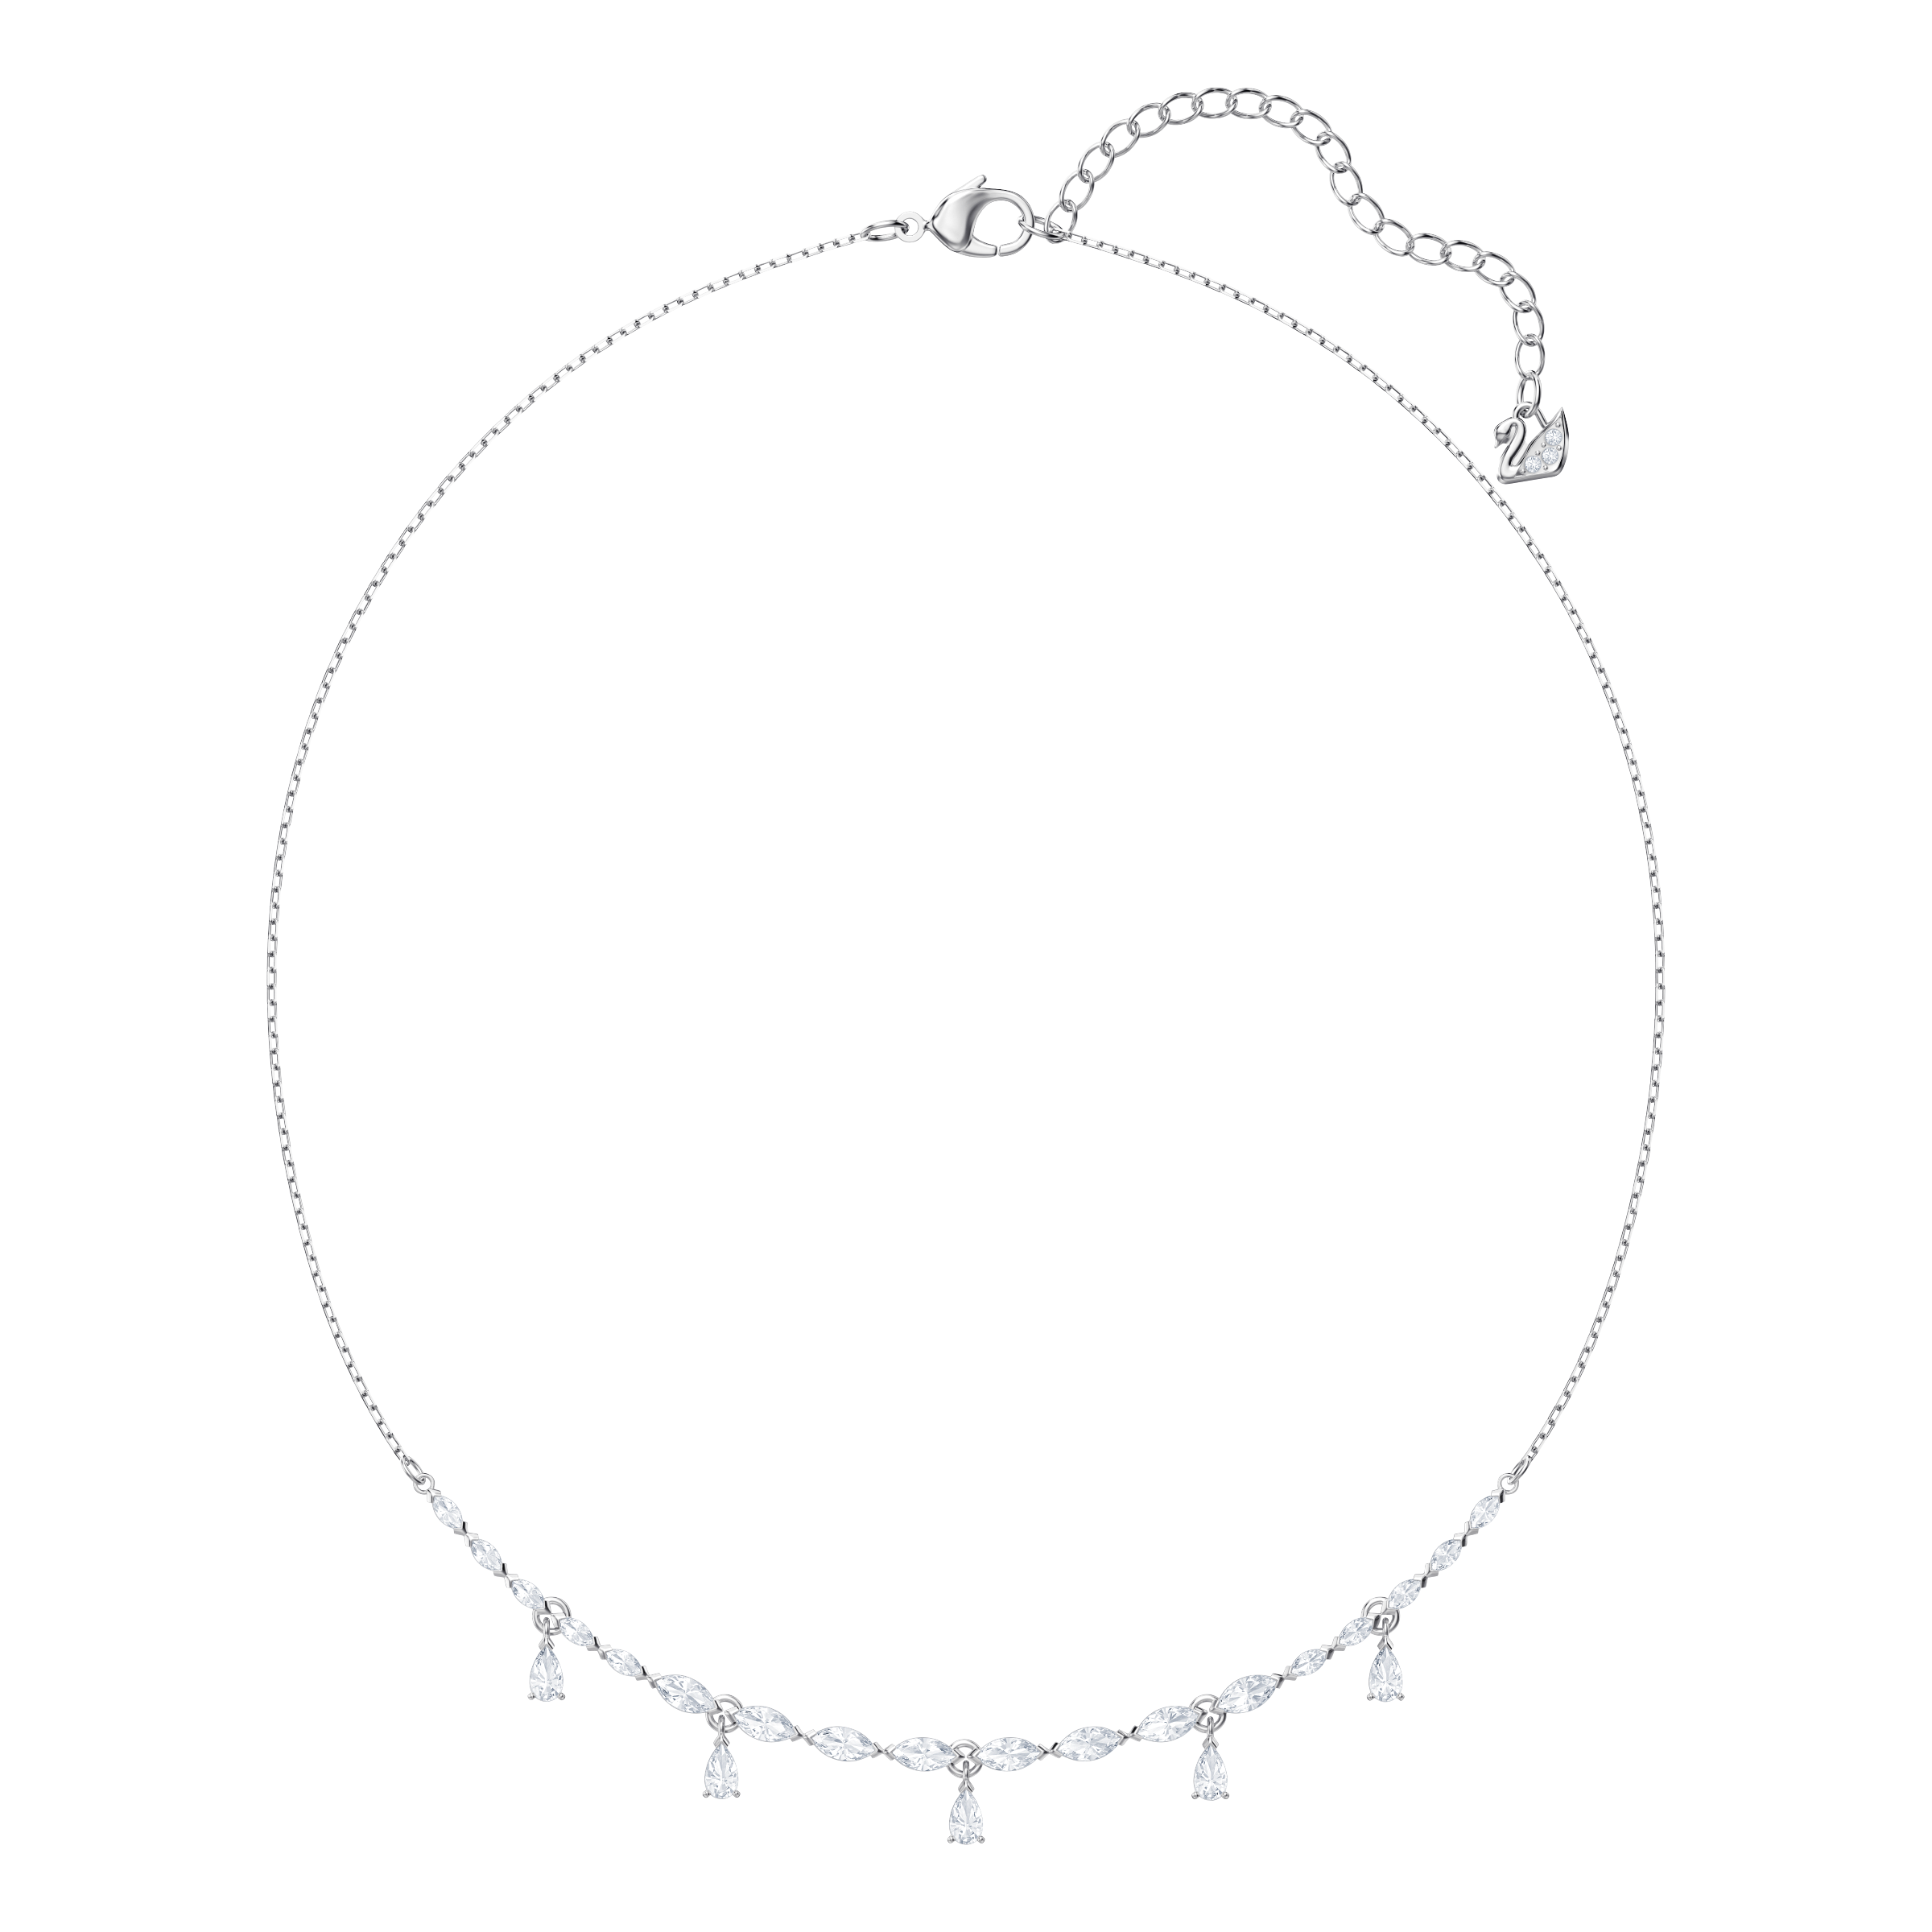 Louison Necklace, Small, White, Rhodium Plating